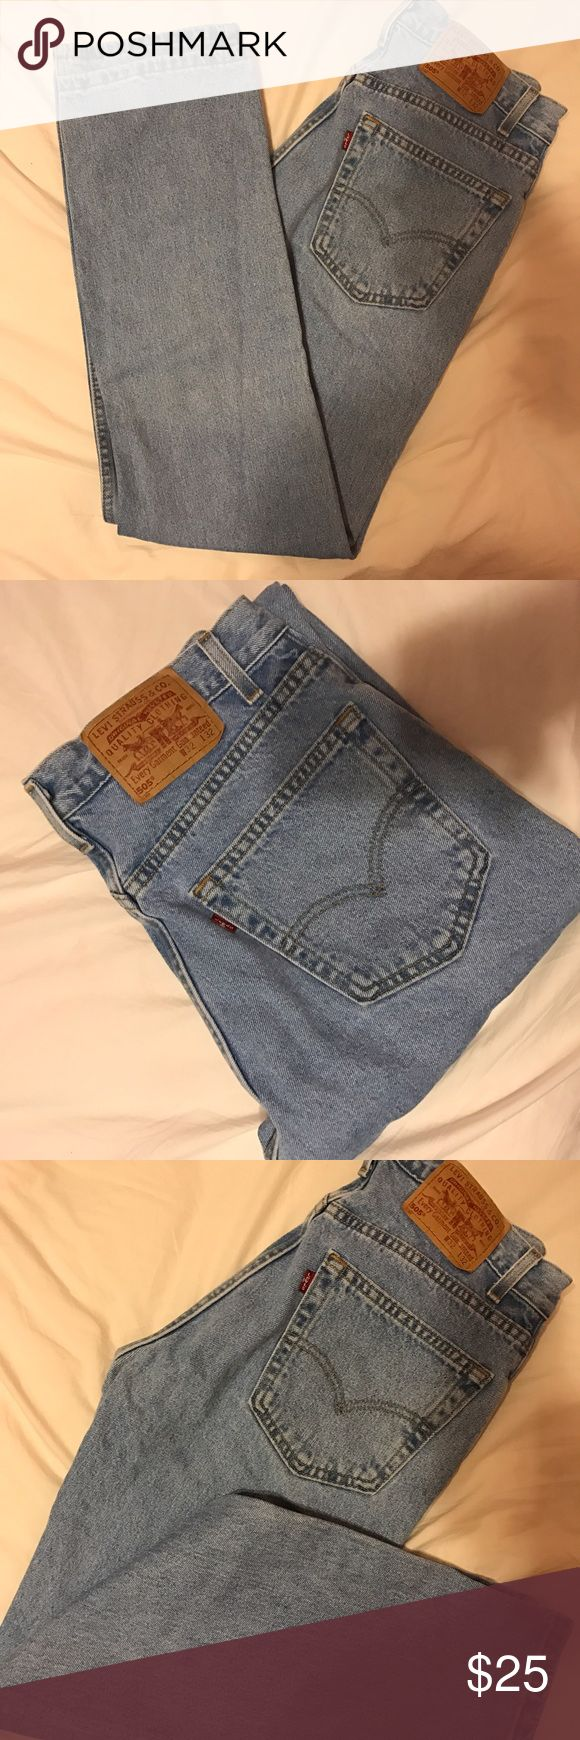 Mom jeans Levi Jeans Light blue mom jeans. This is on very good condition!! Very cute and very in style this season! These jeans are straight legs at the bottom and are super cute but they just don't look good on me. 32 W 32 L these are a size 13/14 converted! (: // #brandymelville #urbanoutfitters TAGGED FOR EXPOSURE Levi's Jeans Straight Leg